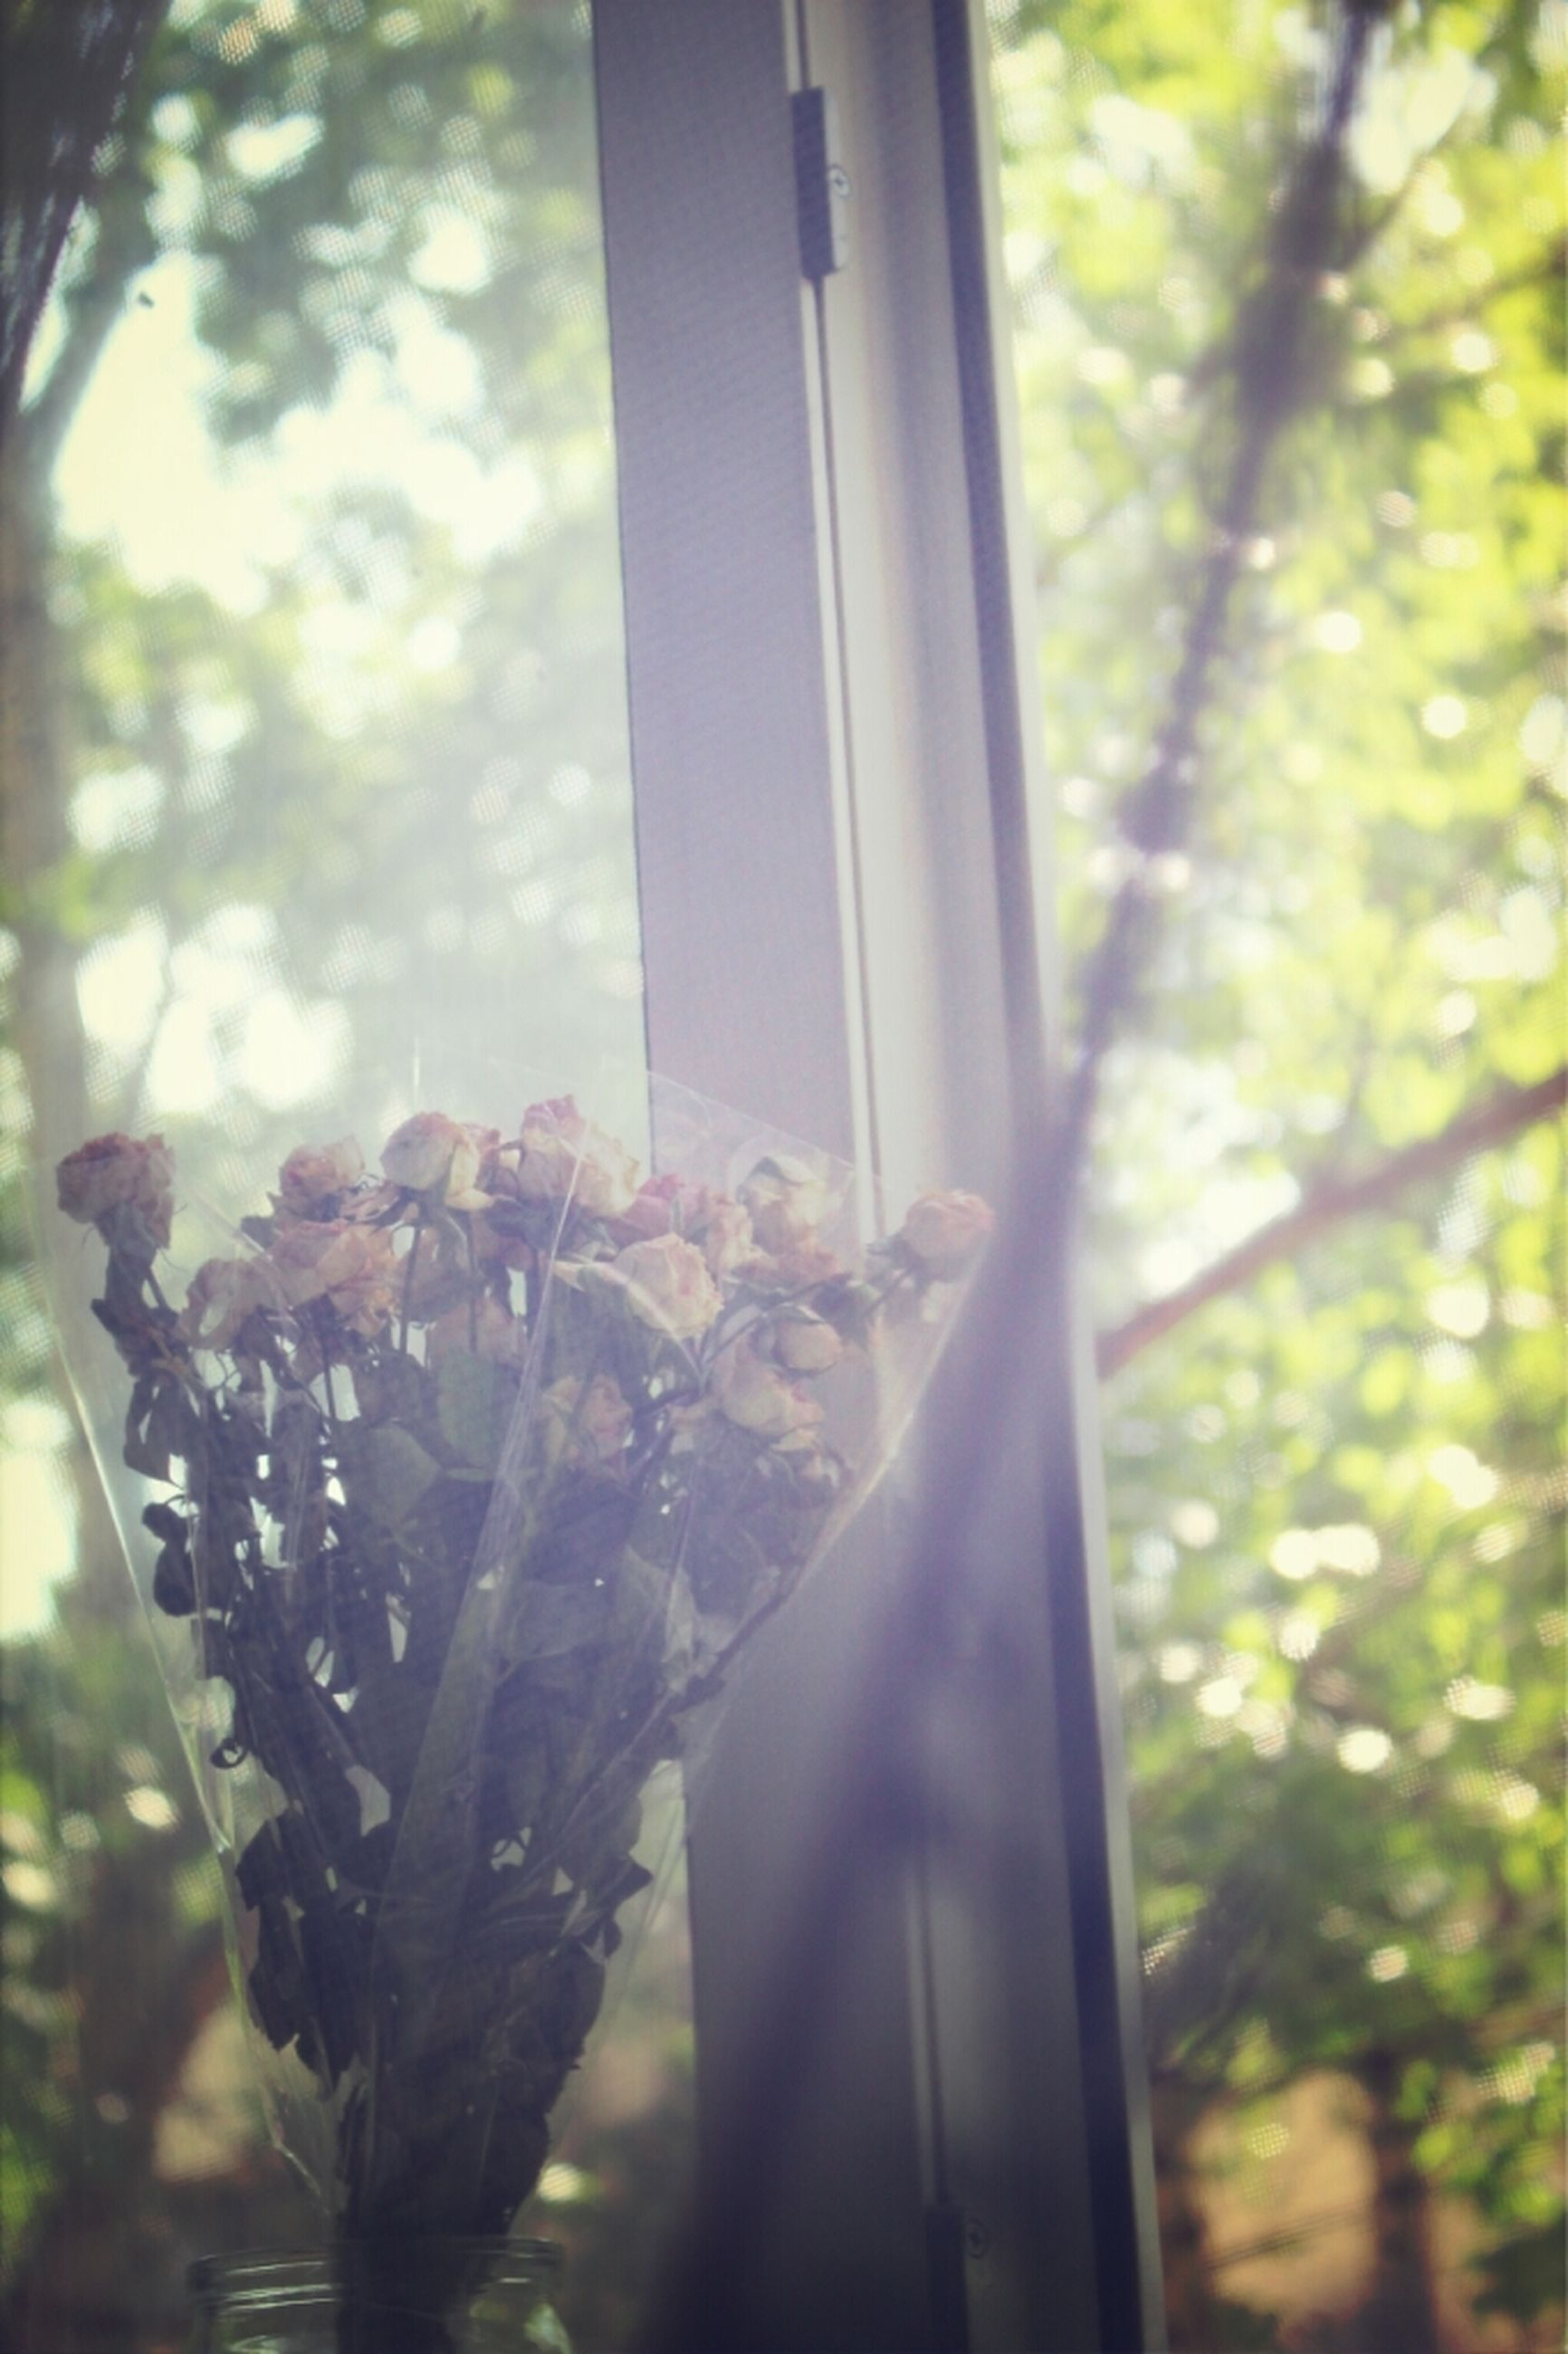 focus on foreground, tree, close-up, window, growth, glass - material, hanging, low angle view, indoors, transparent, day, selective focus, branch, nature, no people, sunlight, plant, leaf, tree trunk